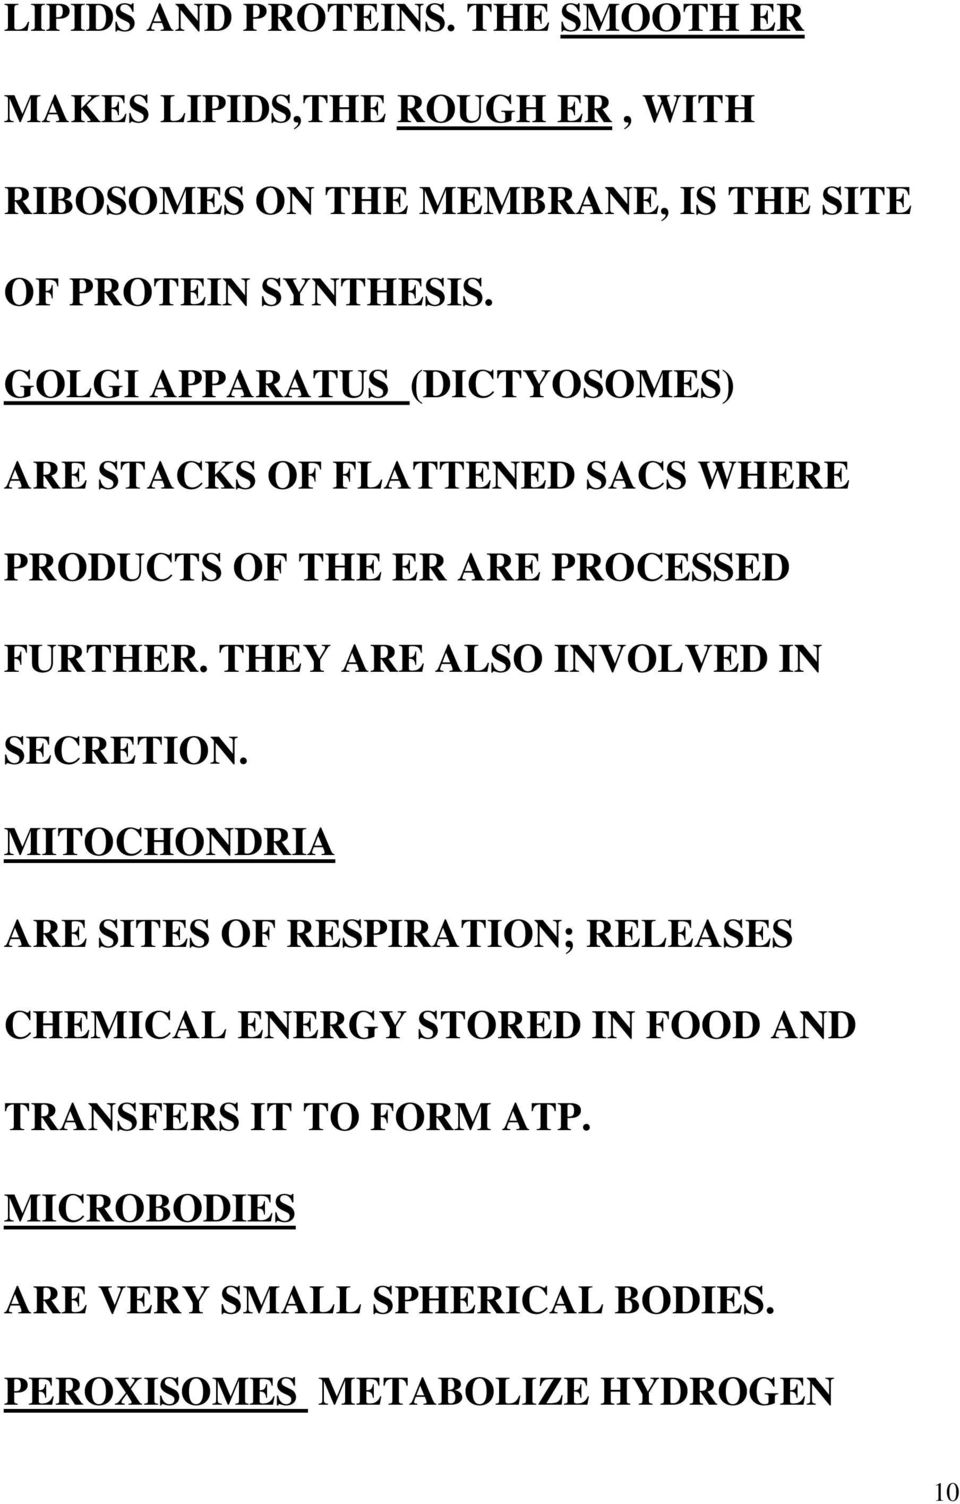 GOLGI APPARATUS (DICTYOSOMES) ARE STACKS OF FLATTENED SACS WHERE PRODUCTS OF THE ER ARE PROCESSED FURTHER.